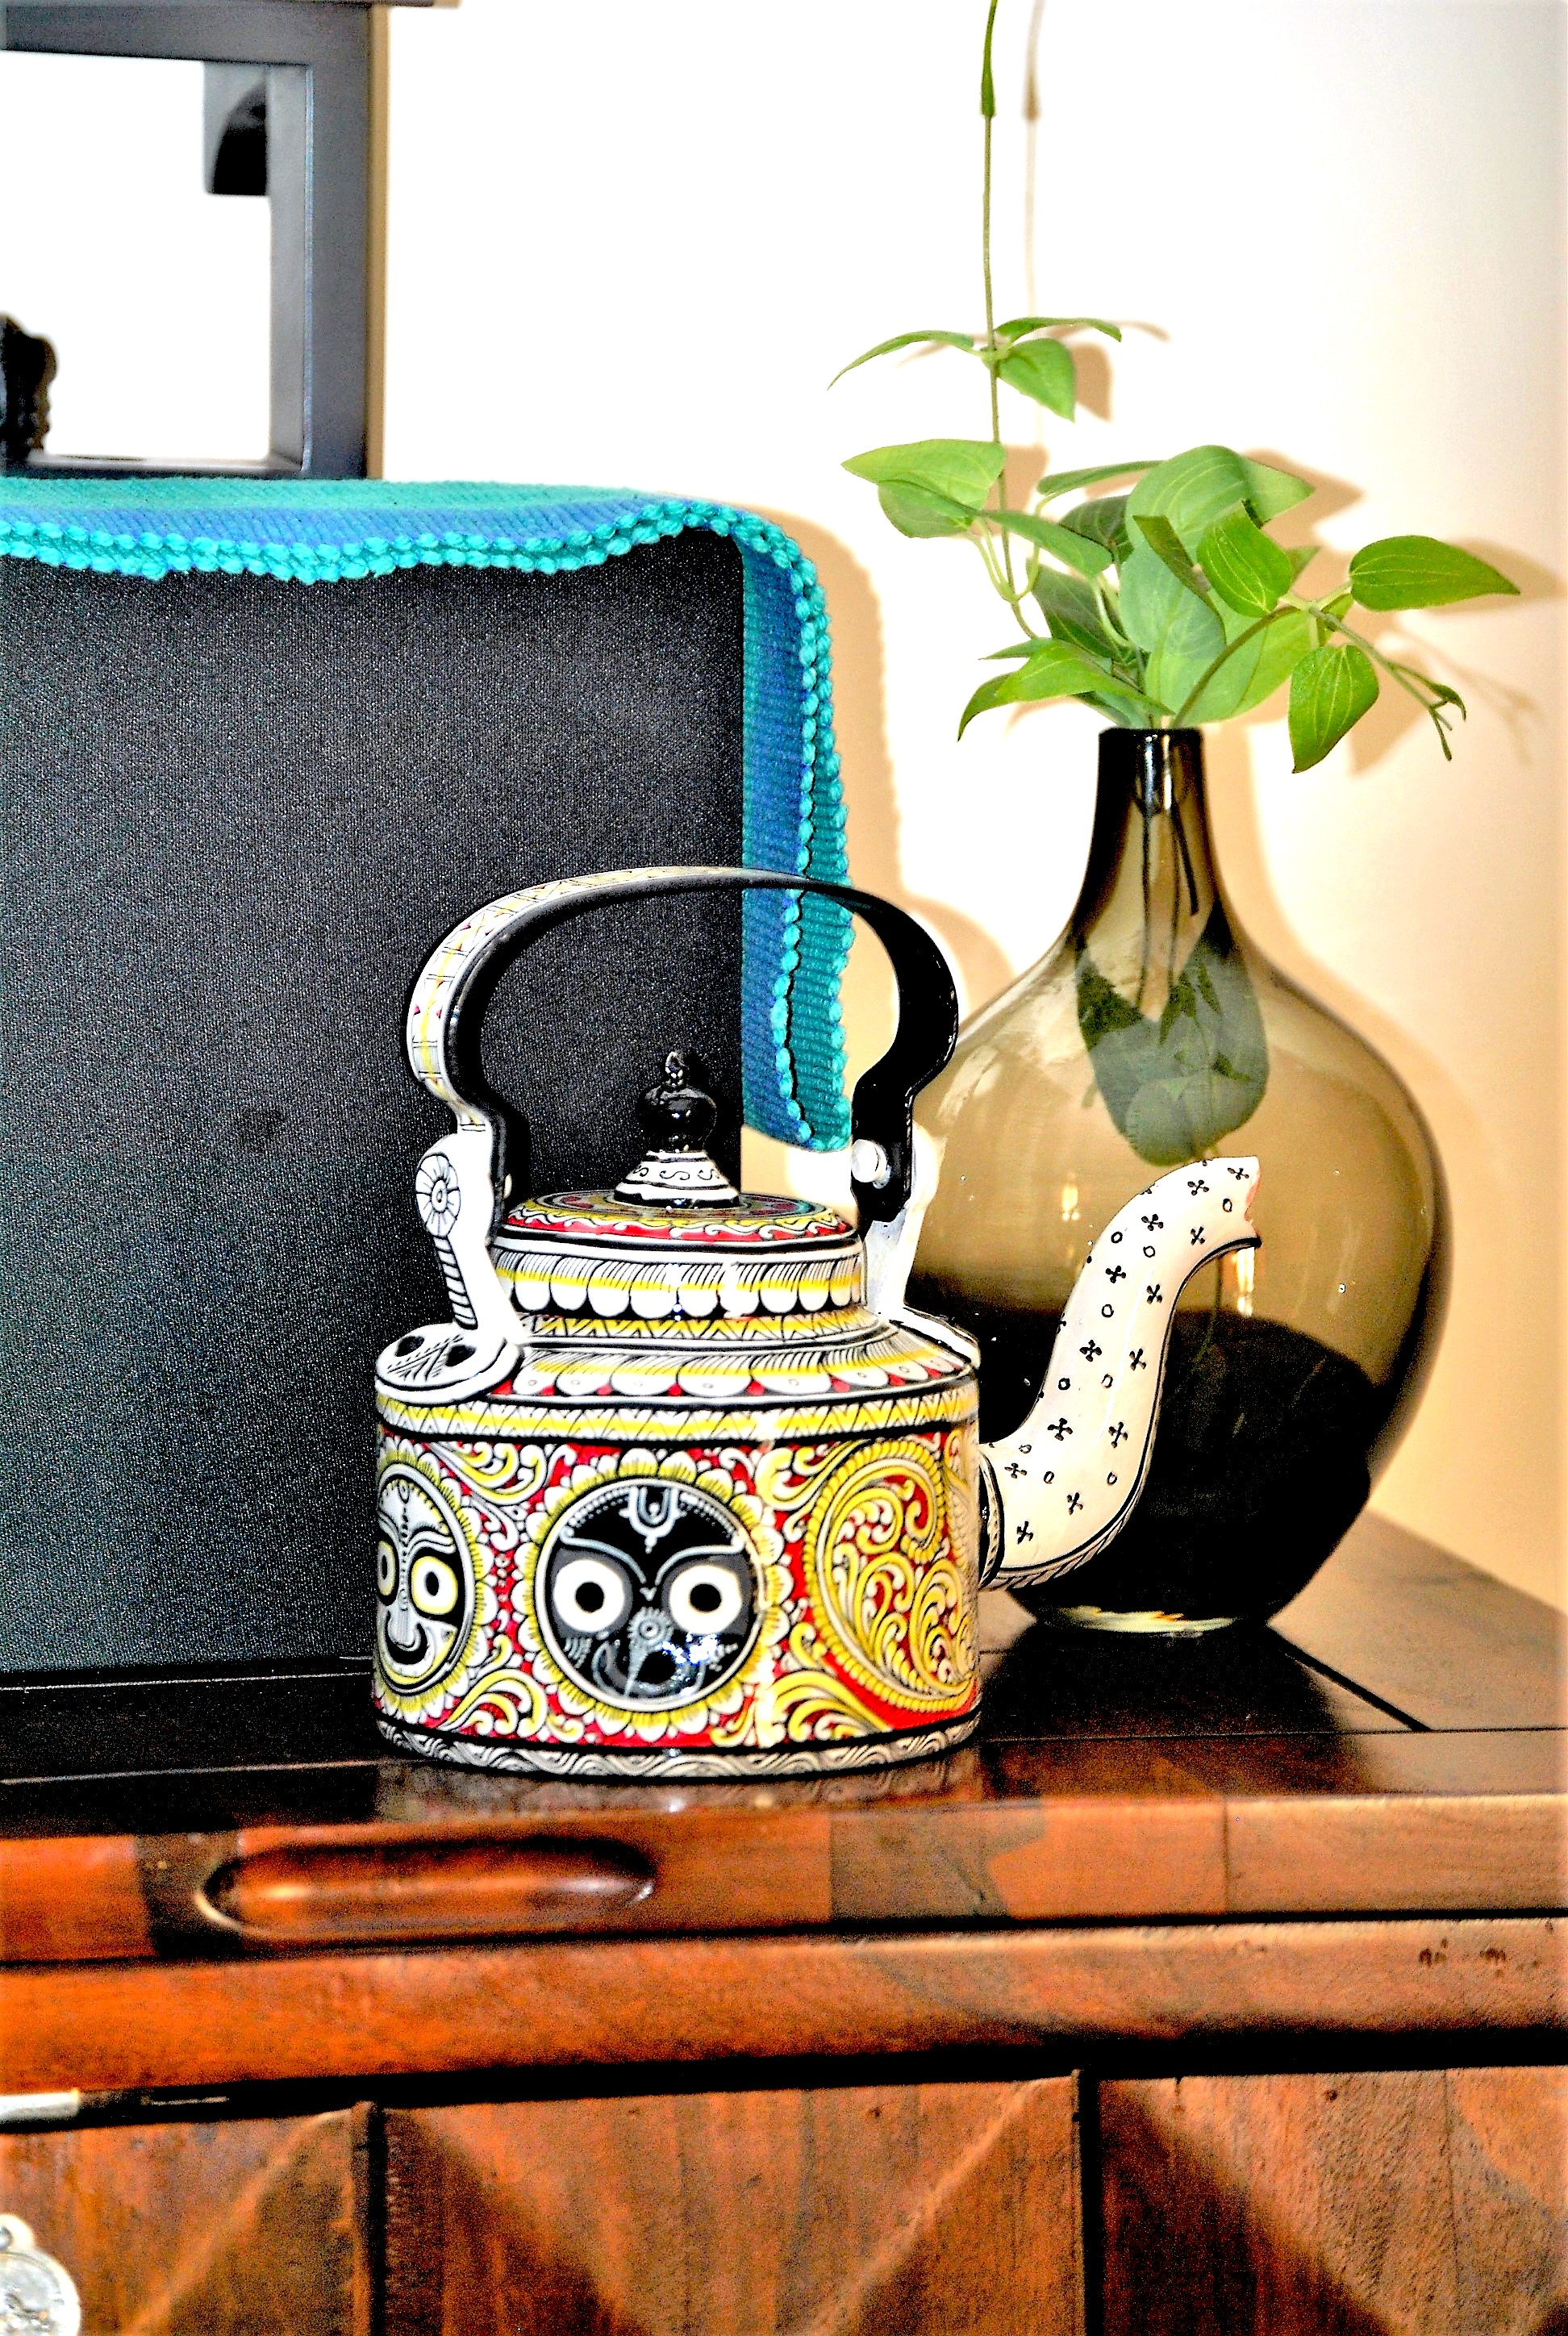 Top-decor-ideas-for-your-home-with-hand-painted-kettles8 Top decor ideas for your home with hand-painted kettles